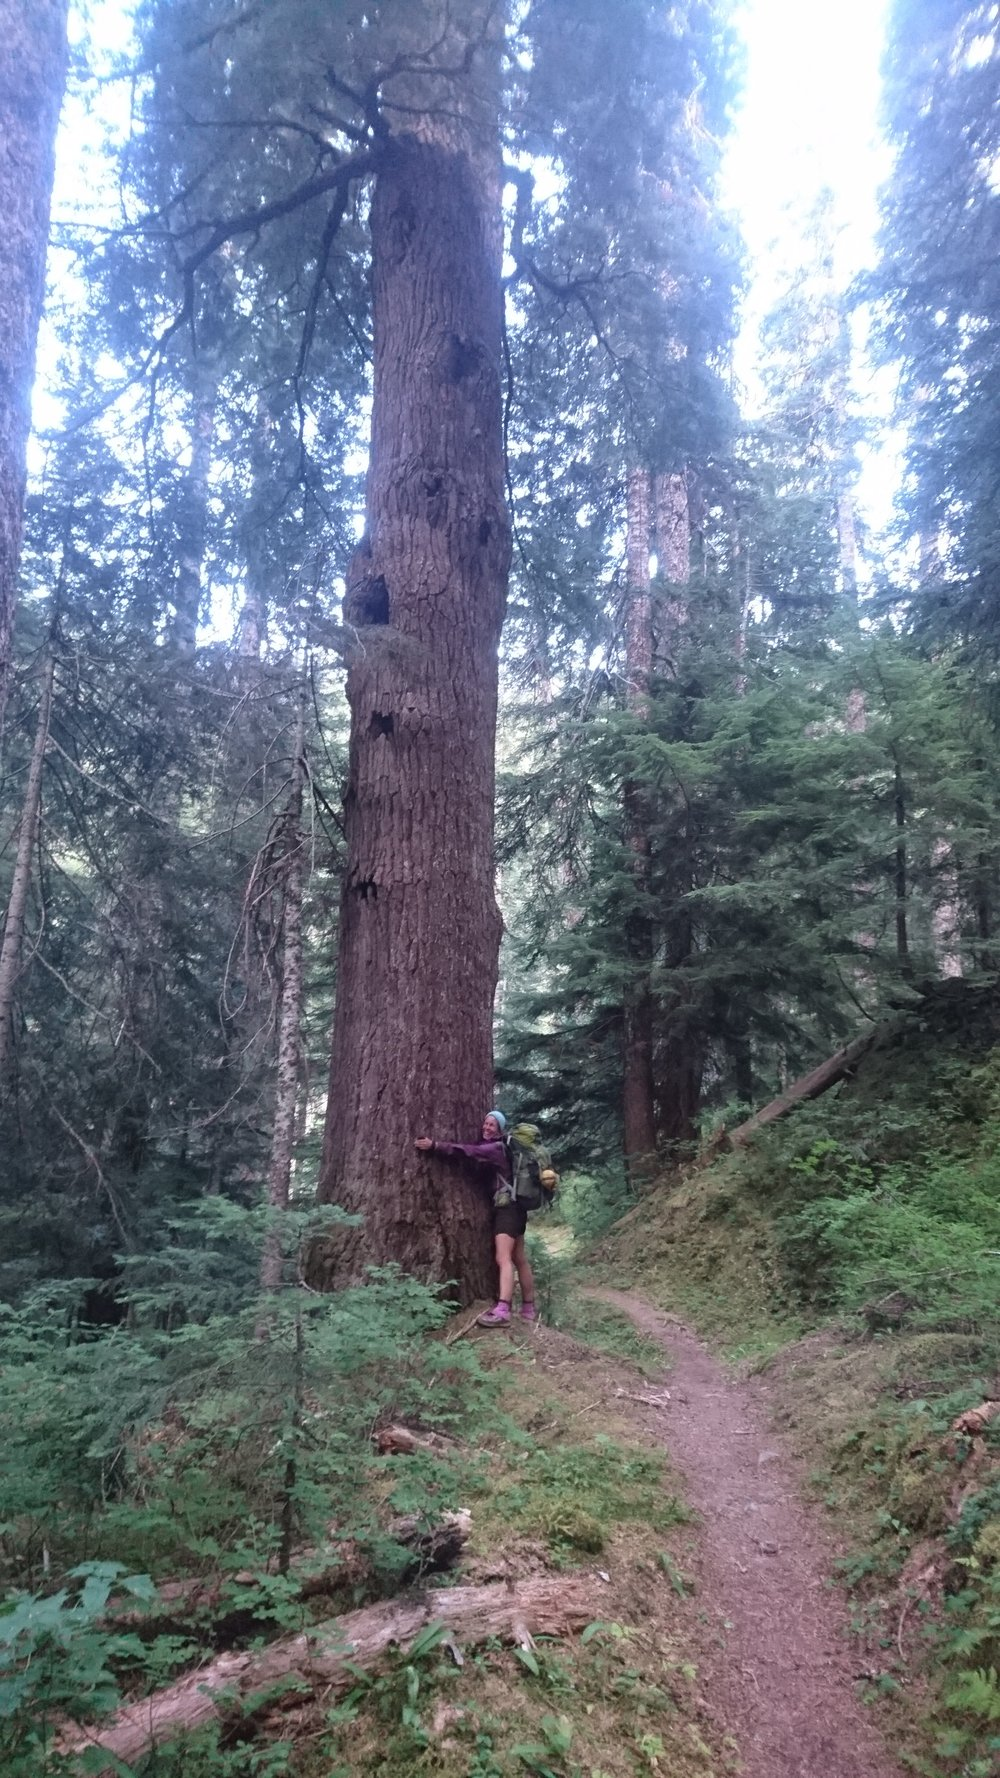 Huge, magnificent trees! Such honor to be in their presence!